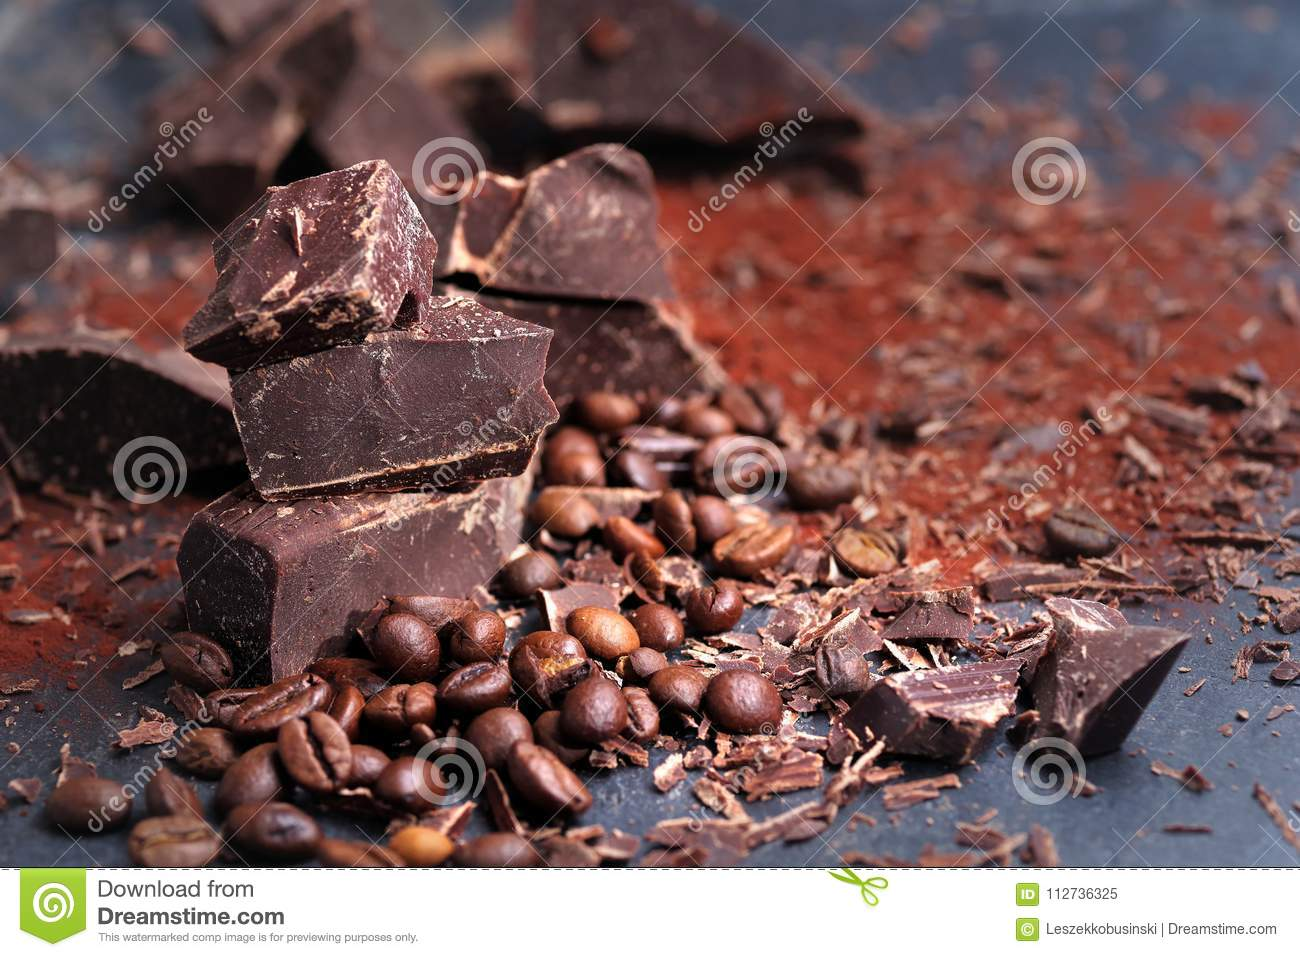 Broken dark chocolate, cocoa powder and coffee beans